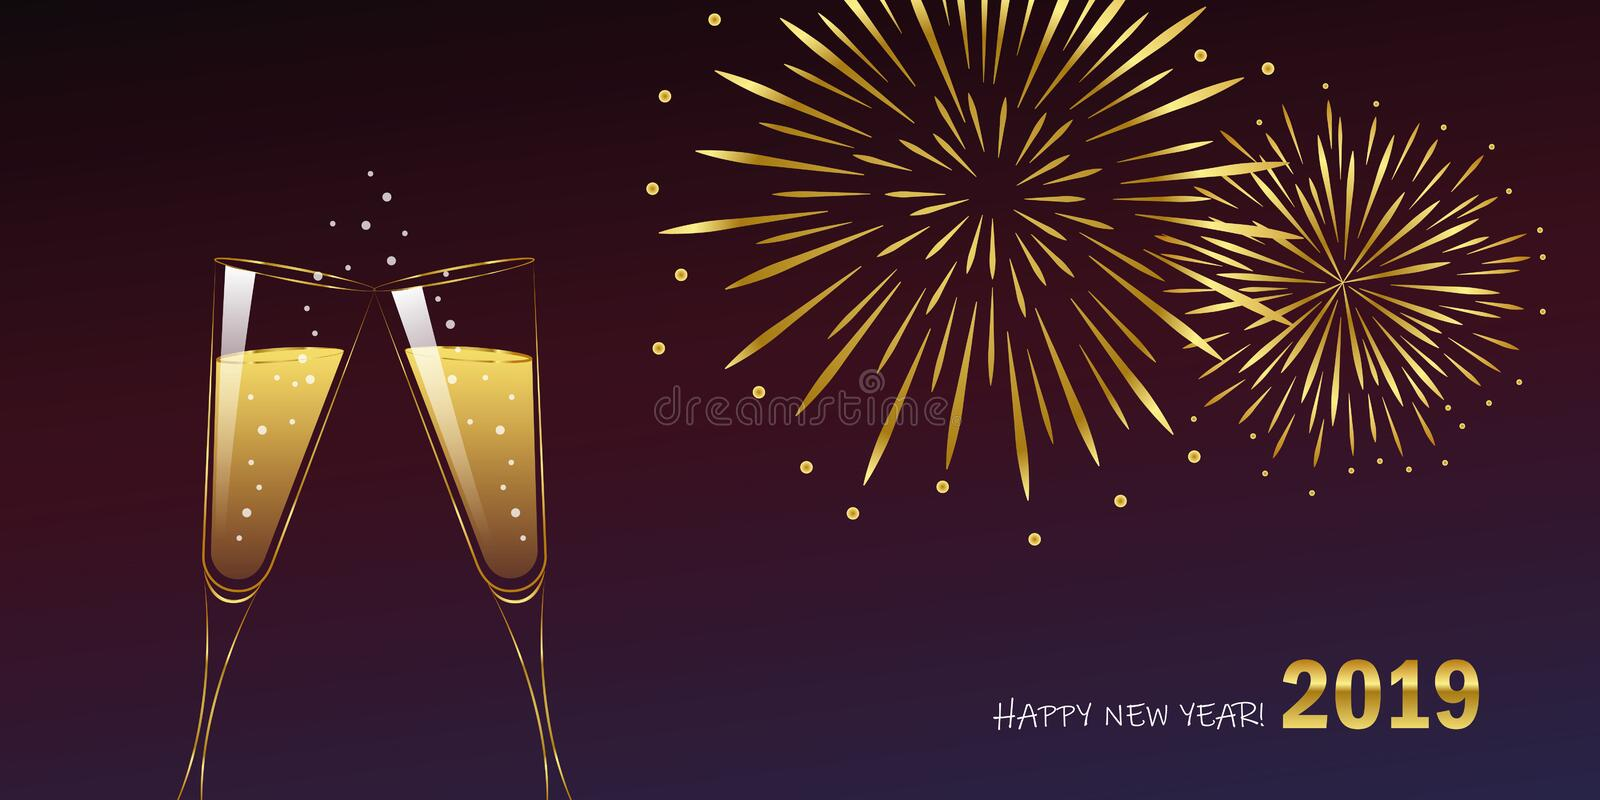 New Year golden fireworks and champagne glasses stock illustration